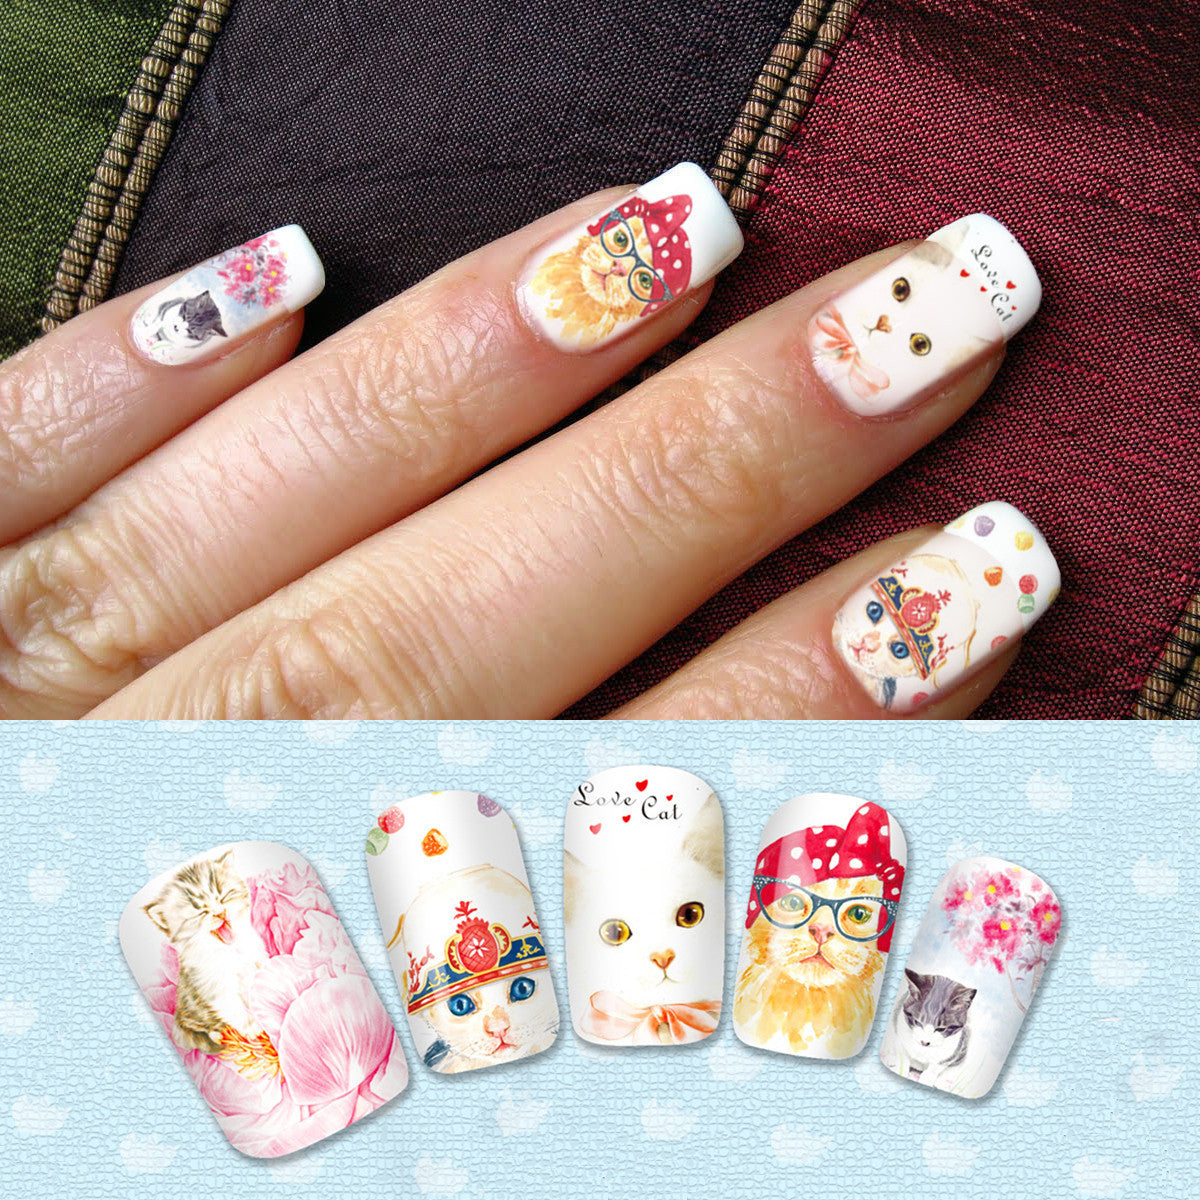 Cat Lover Nail Art Decals - One Cool Gift - 1 - Get Cat Lover Nail Art Decals At Best Cat Gift Store, Crazycatshop